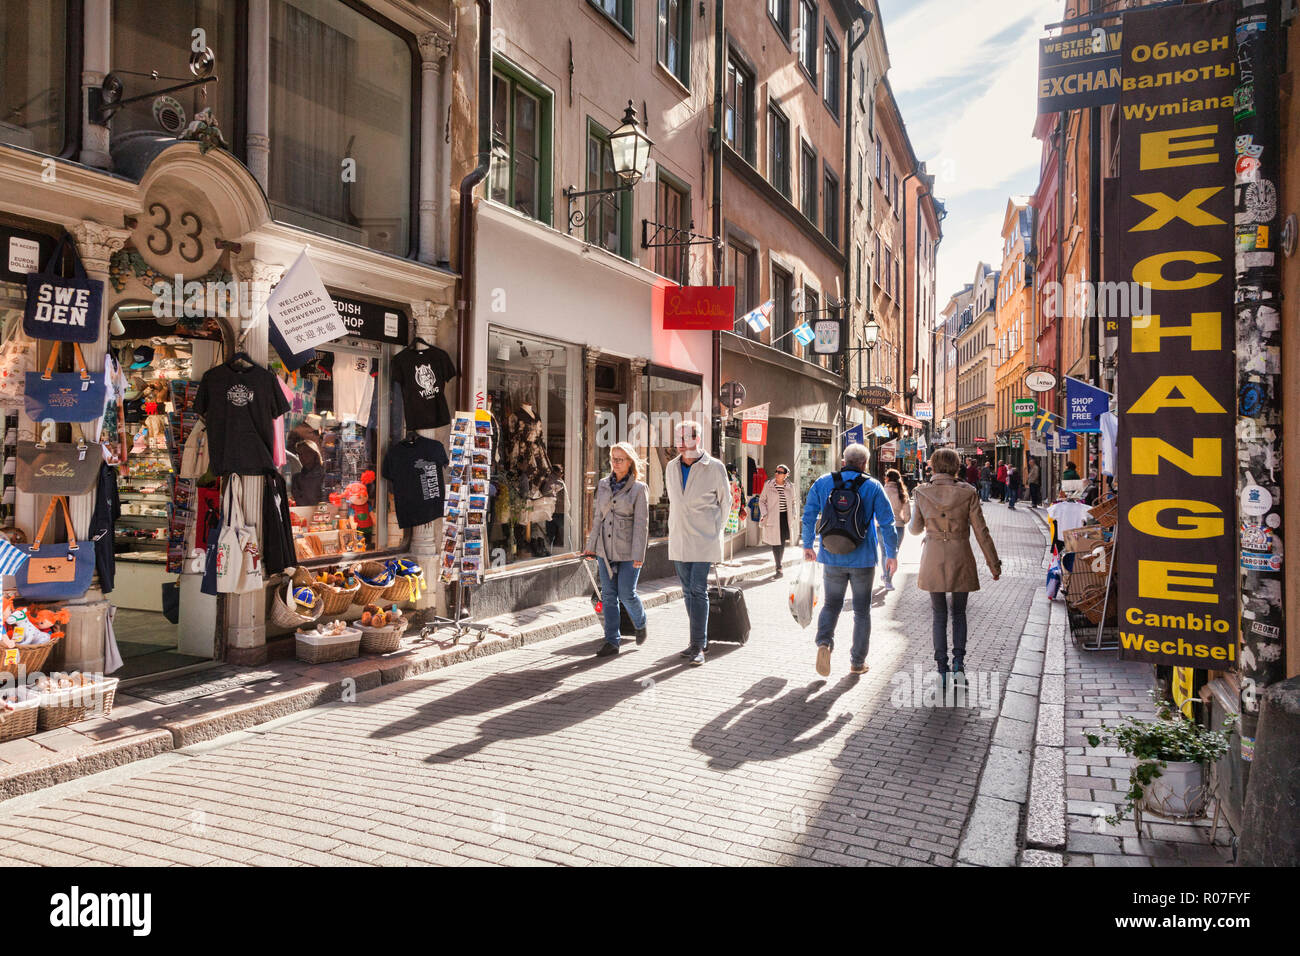 16 September 2018: Stockholm, Sweden - Tourists wandering the streets of Gamla stan, Stockholm's old town, on a sunny autumn day. Stock Photo